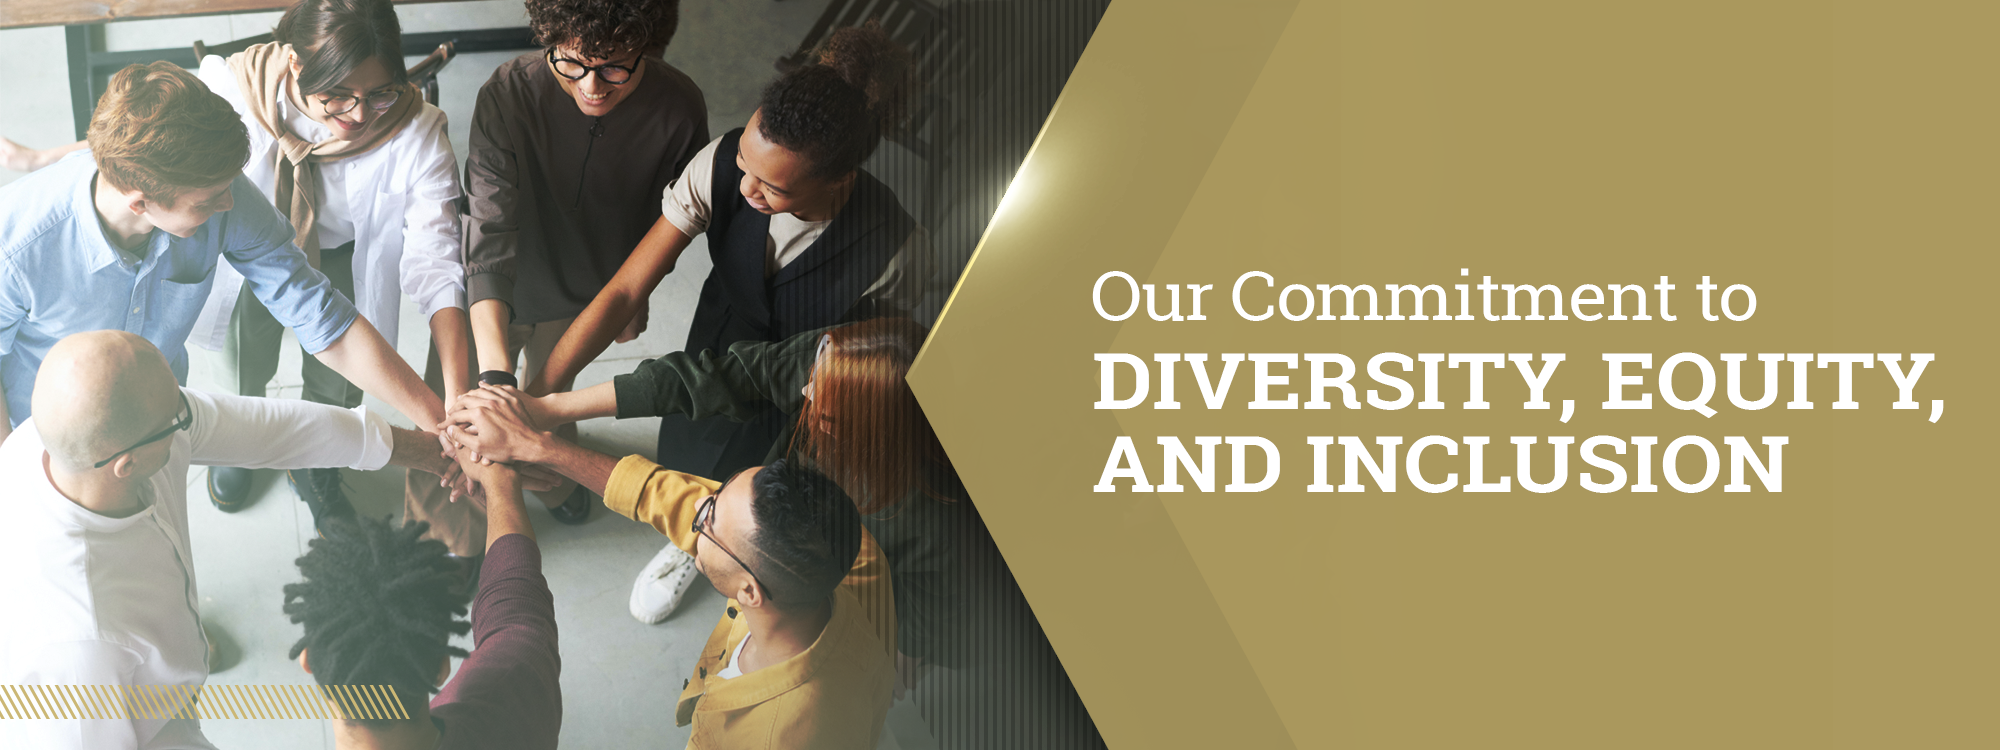 IBB's Commitment to Diversity, Equity, and Inclusion